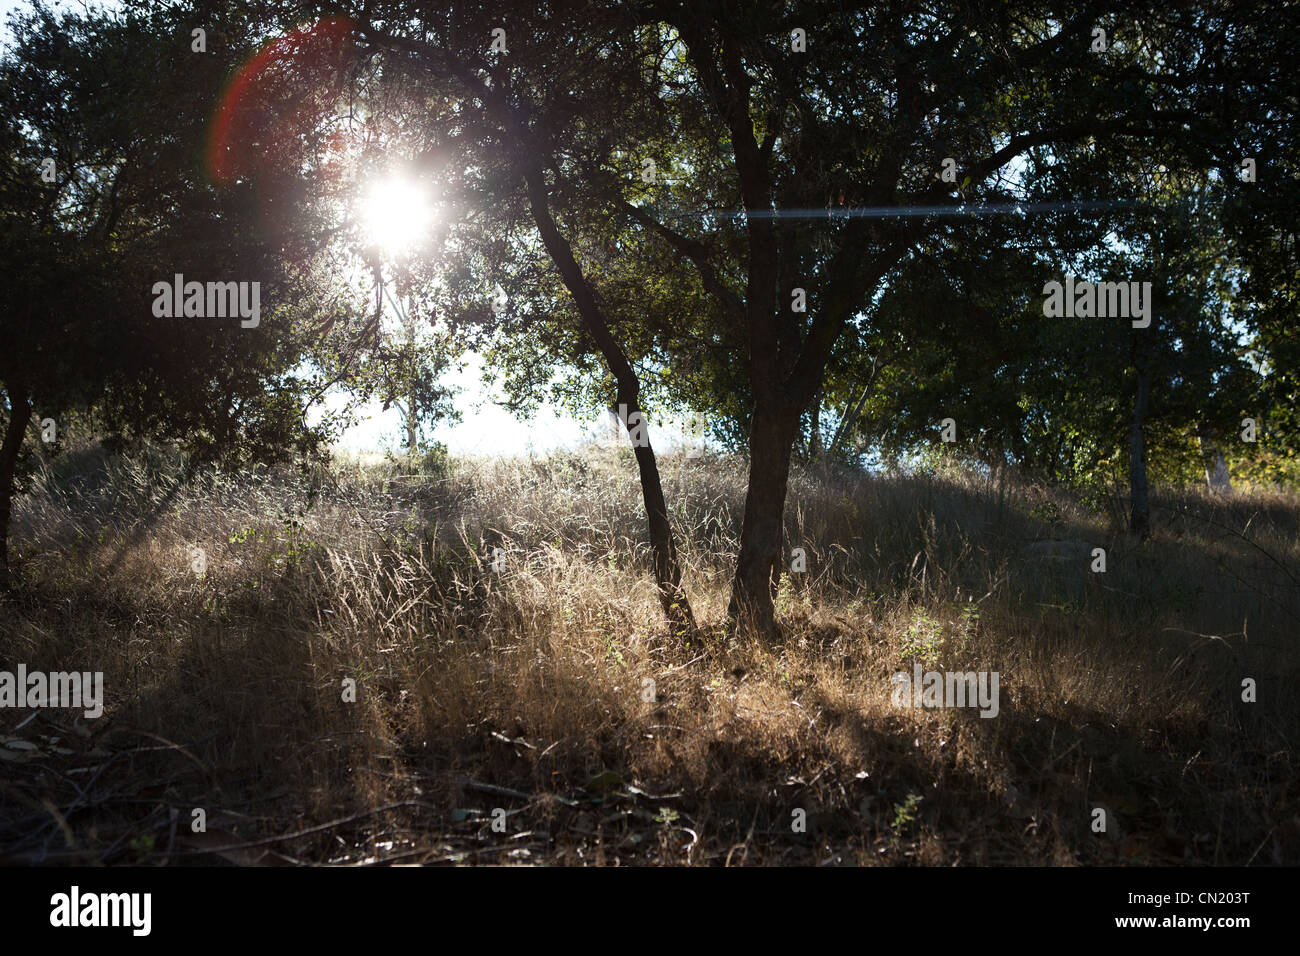 Sun shining through the trees of an open, grassy field - Stock Image